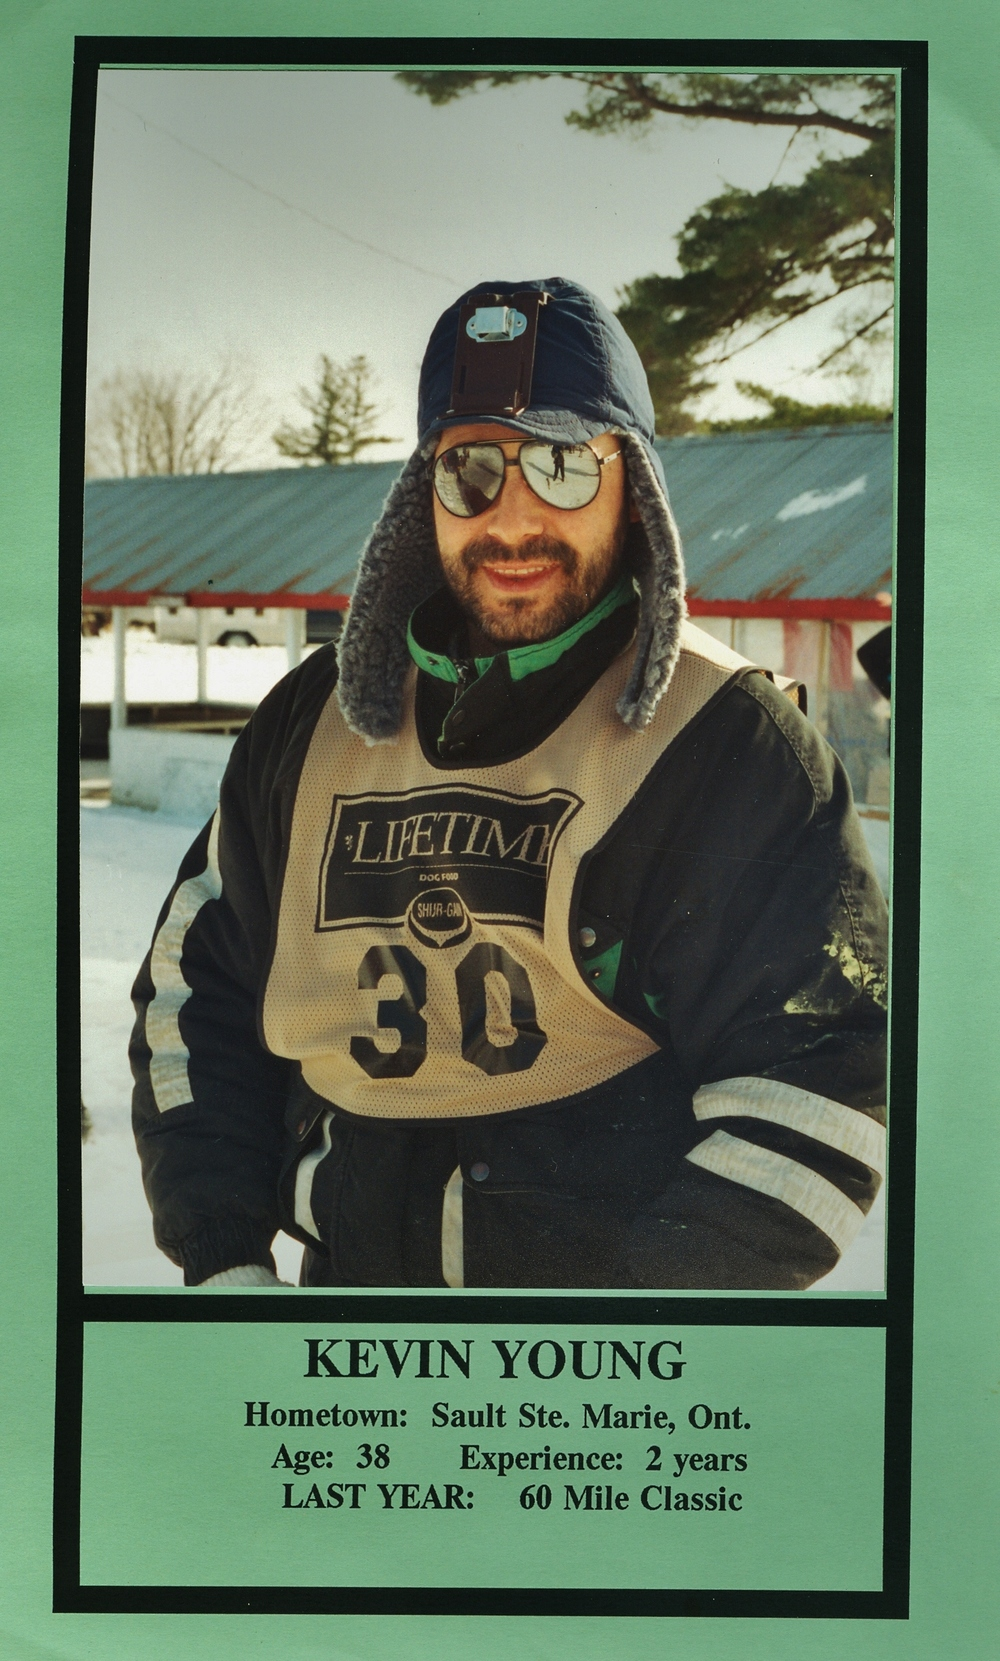 Snofest 1994 Kevin Young,  Sault Ste. Marie.jpg